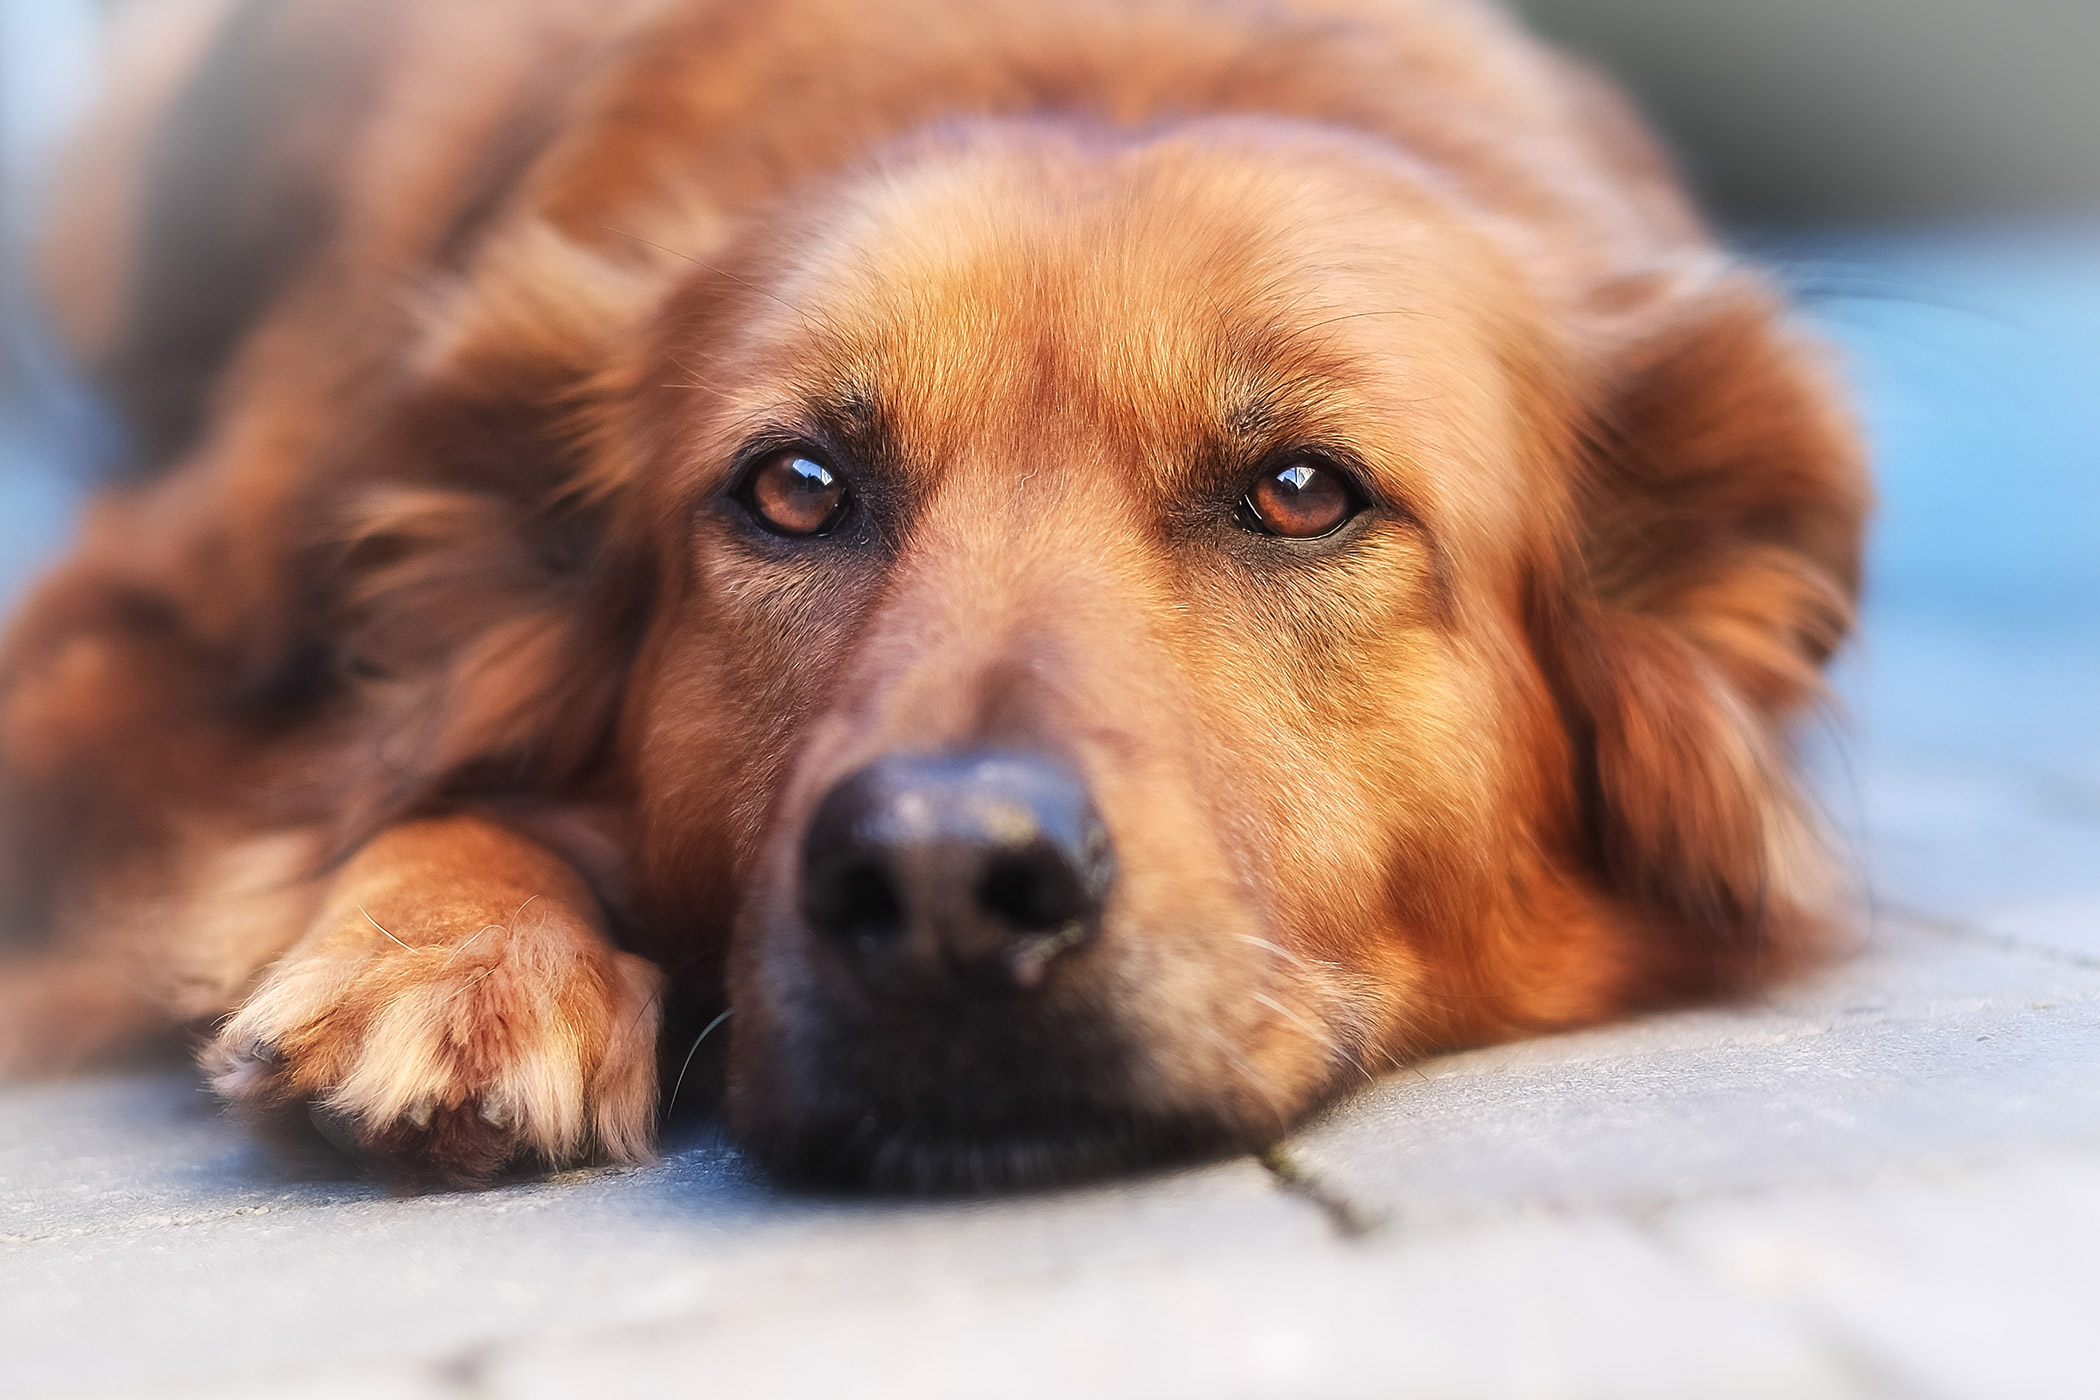 in the urine in dogs - symptoms, causes, diagnosis, treatment